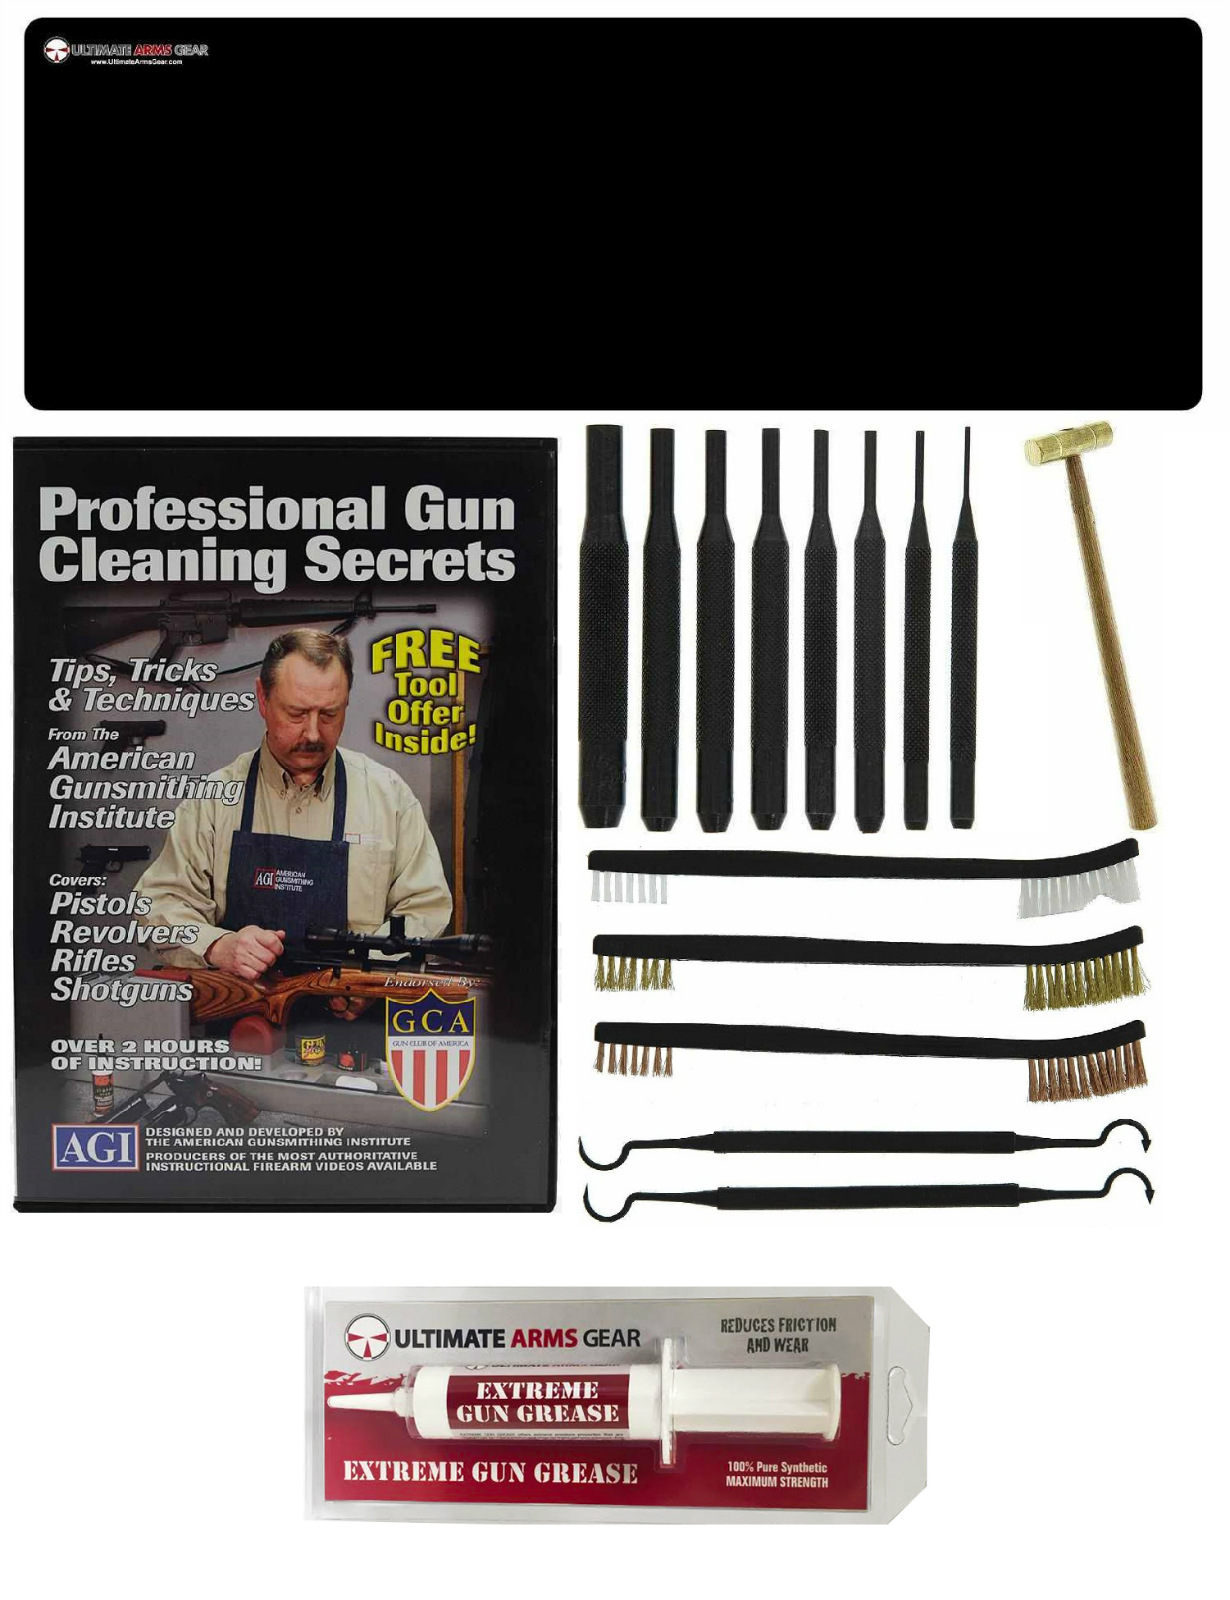 AGI DVD Pro Gun Cleaning Course Remington Model 700, Nylon 66, 600 Magnum Rifle + Ultimate Arms Gear Gunsmith Gun Mat +... by